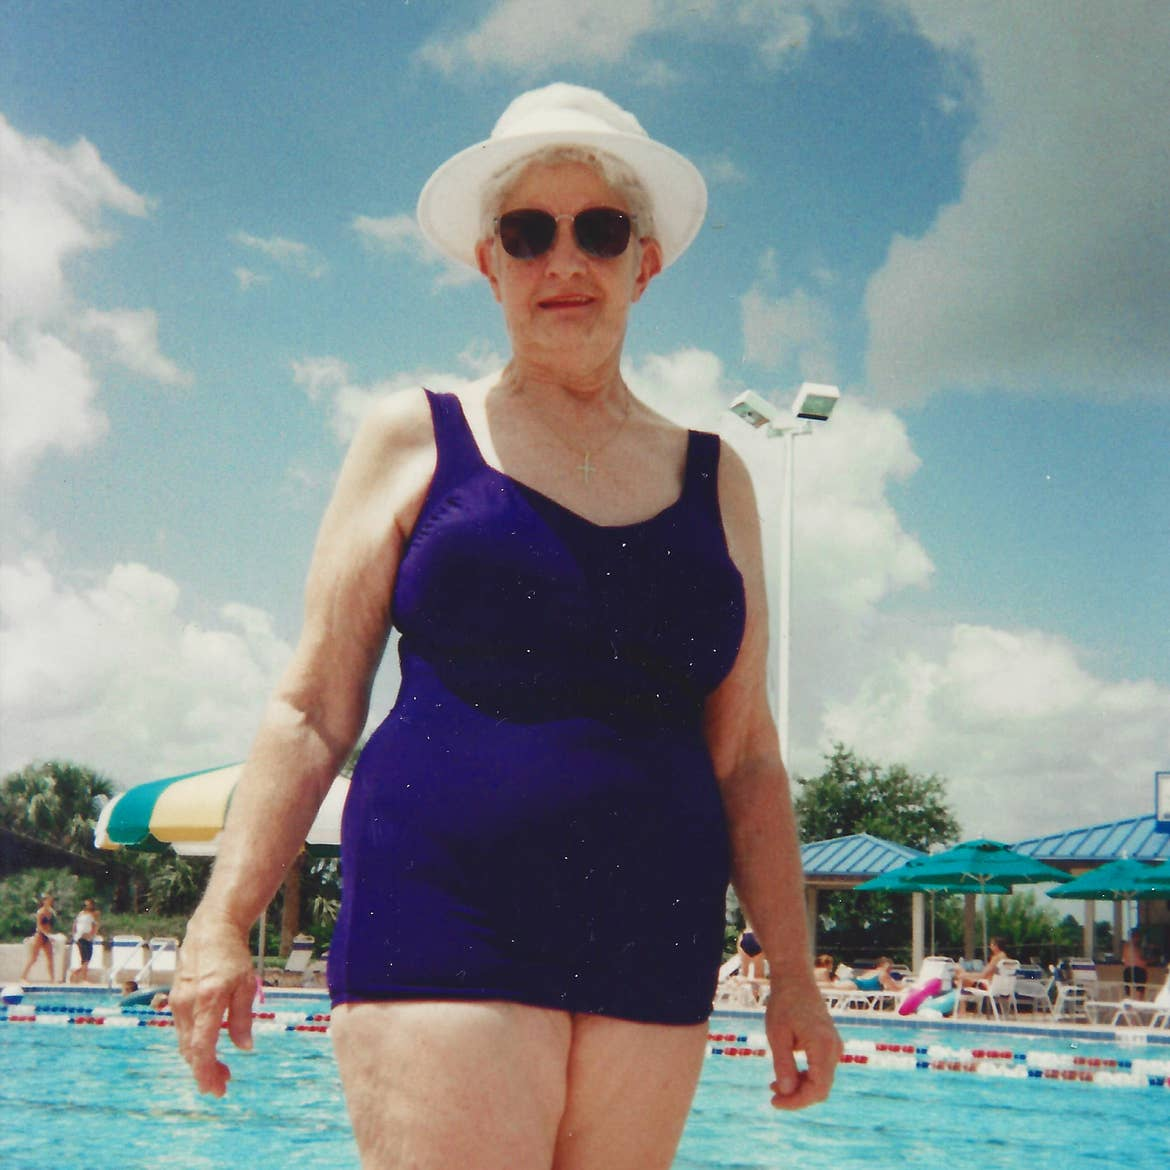 An older caucasian woman stands under a blue sky wearing a blue swimsuit and white sunhat.